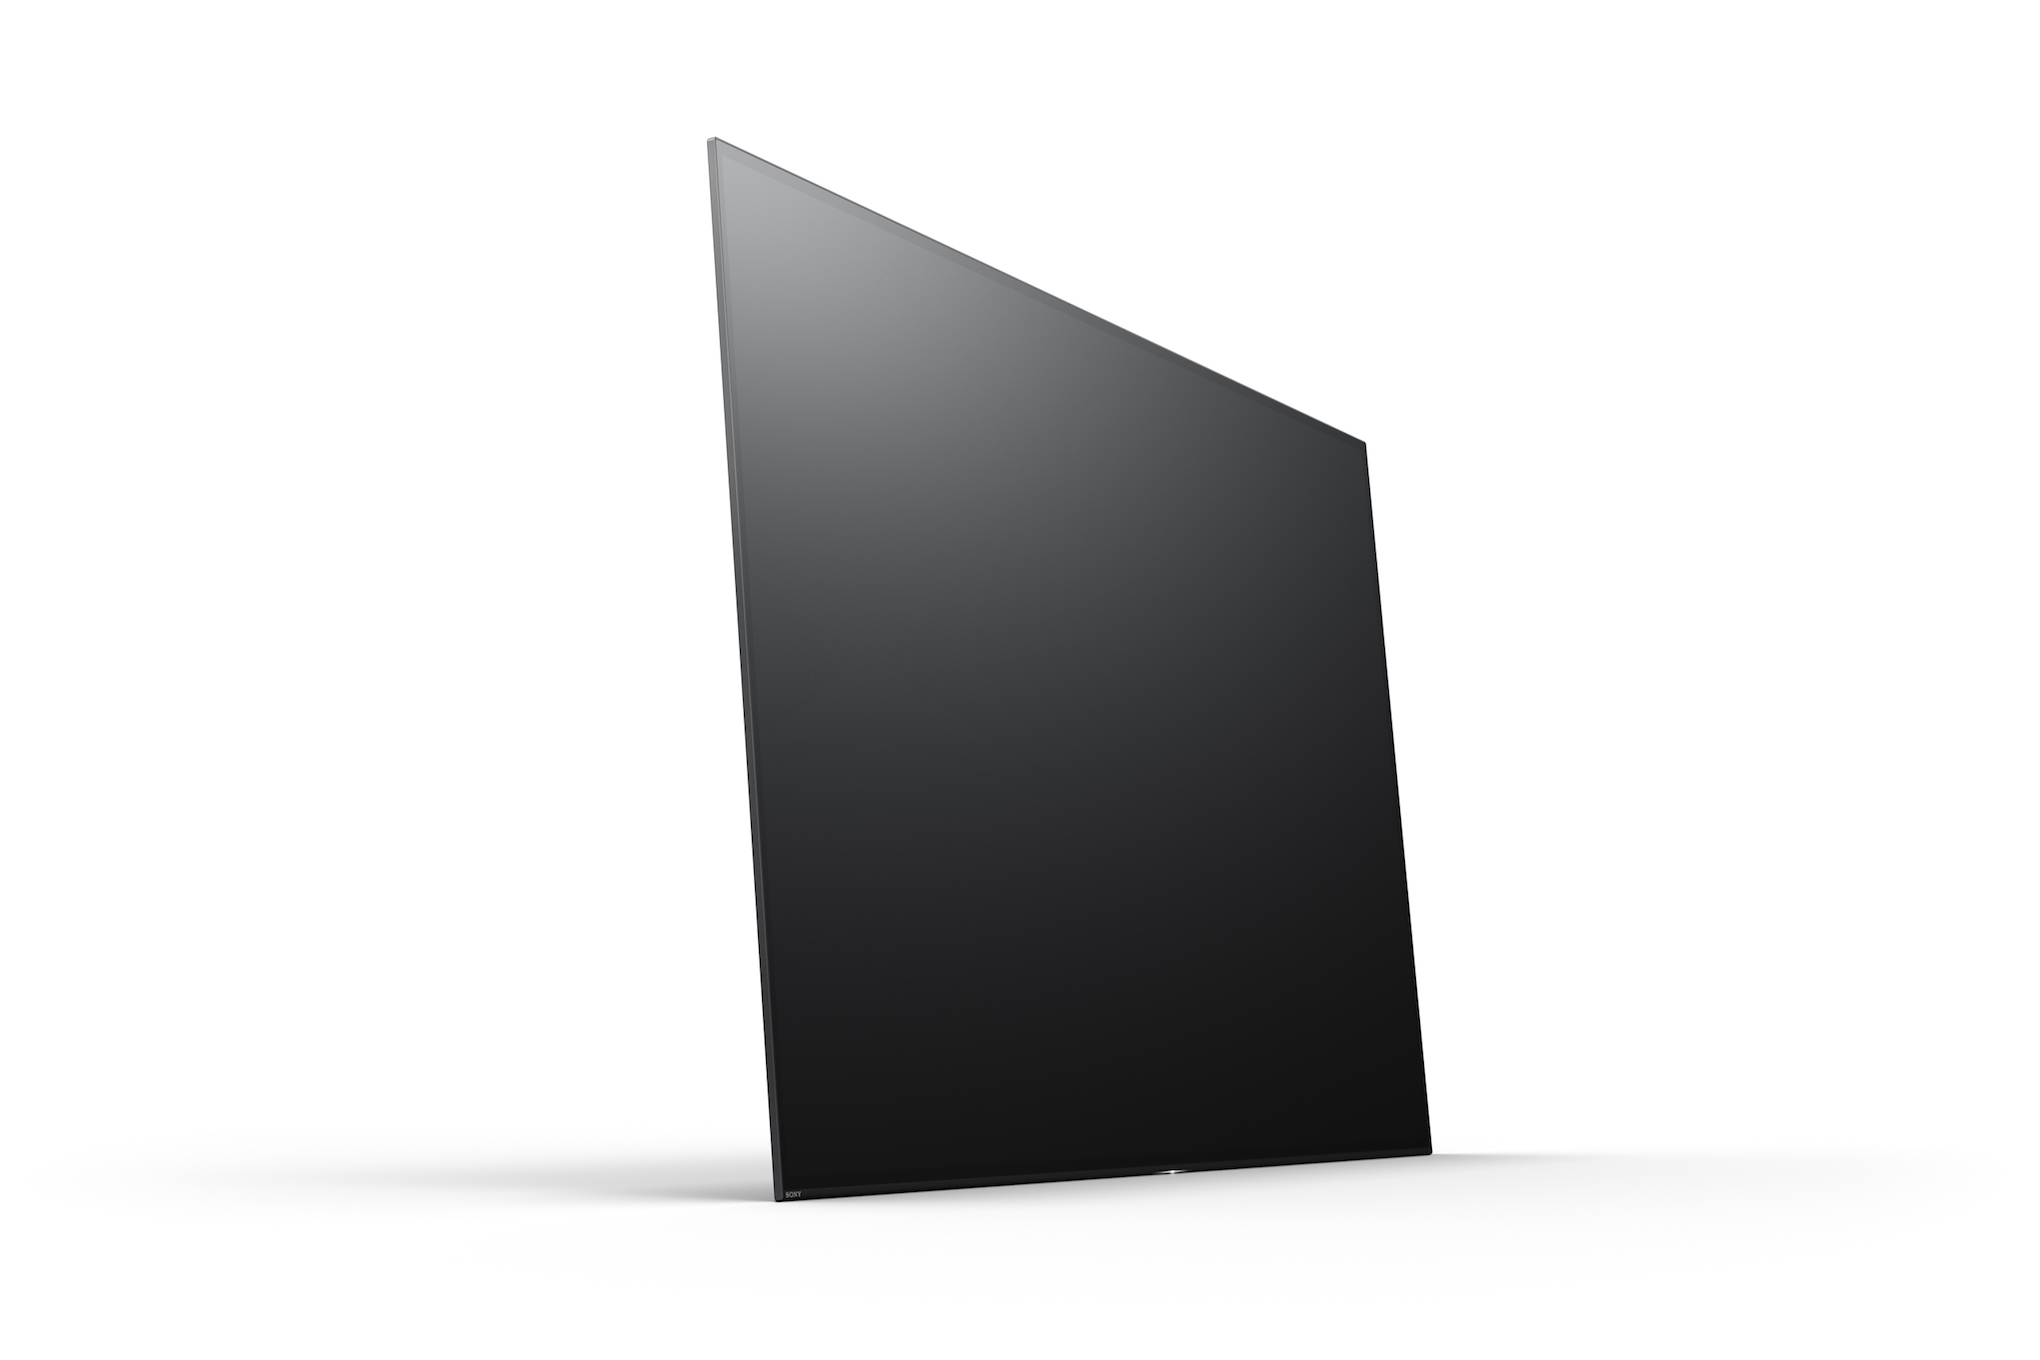 Sony Just Announced A Jaw Dropping Oled Bravia 4k Tv With